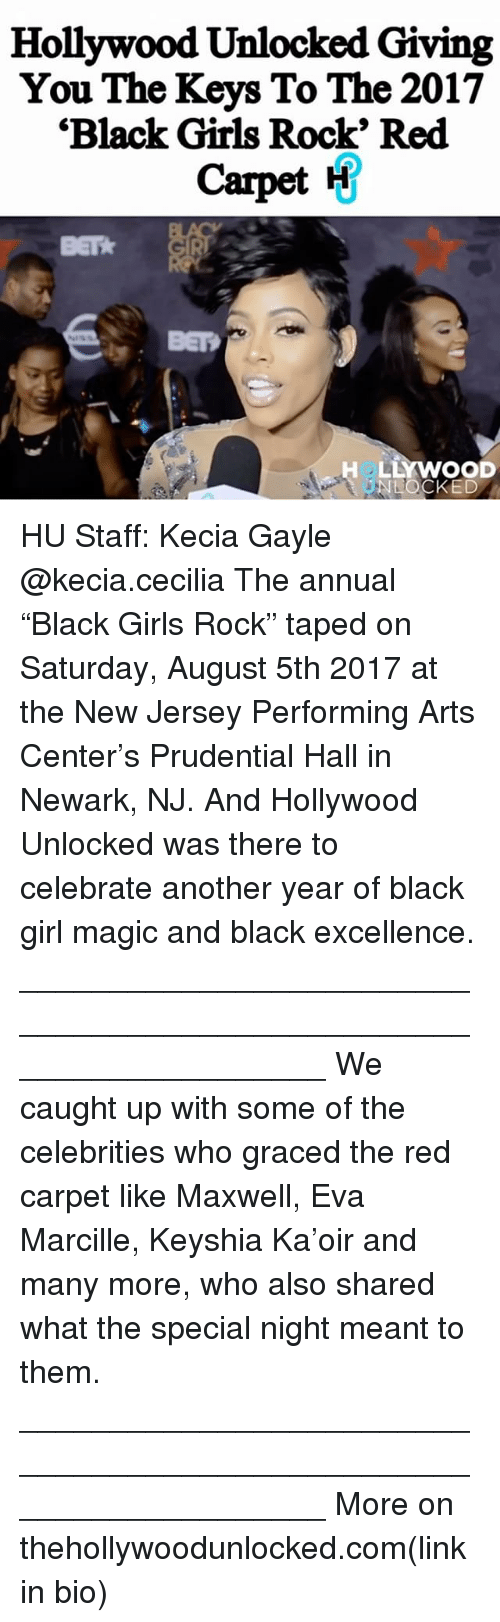 "Girls, Memes, and Black: Hollywood Unlocked Giving  You The Keys To The 2017  'Black Girls Rock' Red  Carpet H  BET  BEP  LLYWOOD  LOCKED HU Staff: Kecia Gayle @kecia.cecilia The annual ""Black Girls Rock"" taped on Saturday, August 5th 2017 at the New Jersey Performing Arts Center's Prudential Hall in Newark, NJ. And Hollywood Unlocked was there to celebrate another year of black girl magic and black excellence. ___________________________________________________________________ We caught up with some of the celebrities who graced the red carpet like Maxwell, Eva Marcille, Keyshia Ka'oir and many more, who also shared what the special night meant to them. ___________________________________________________________________ More on thehollywoodunlocked.com(link in bio)"